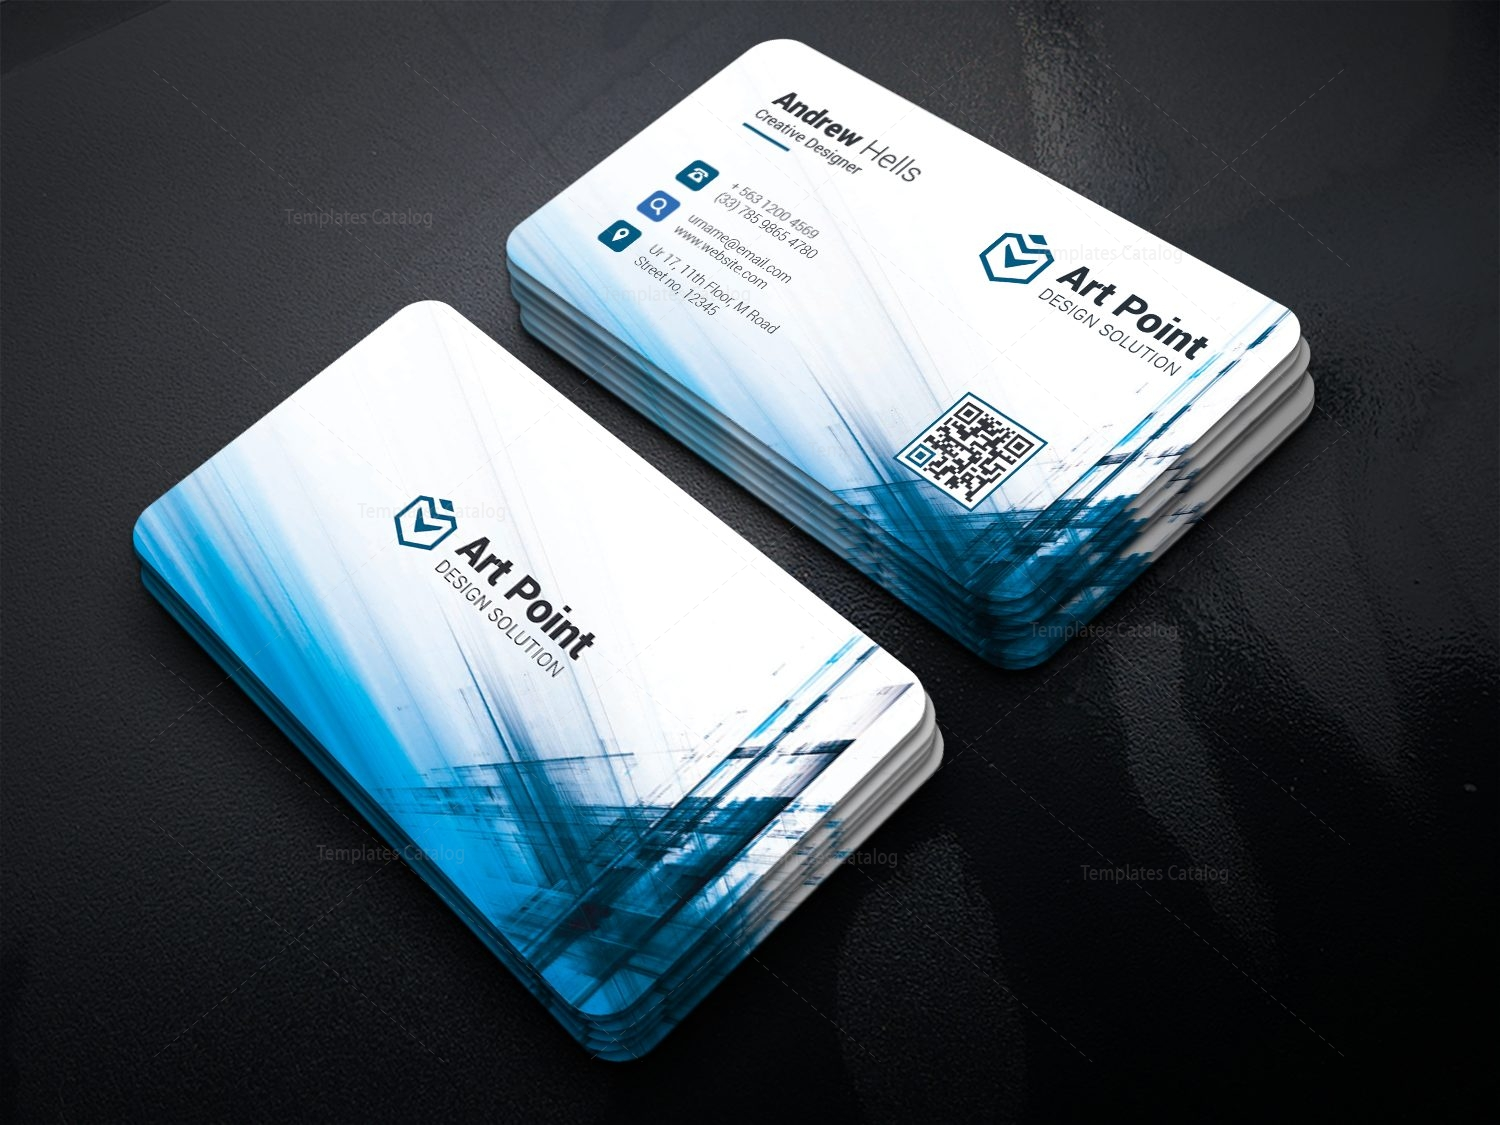 Aether professional corporate business card template 001317 aether professional corporate business card template 1 accmission Image collections